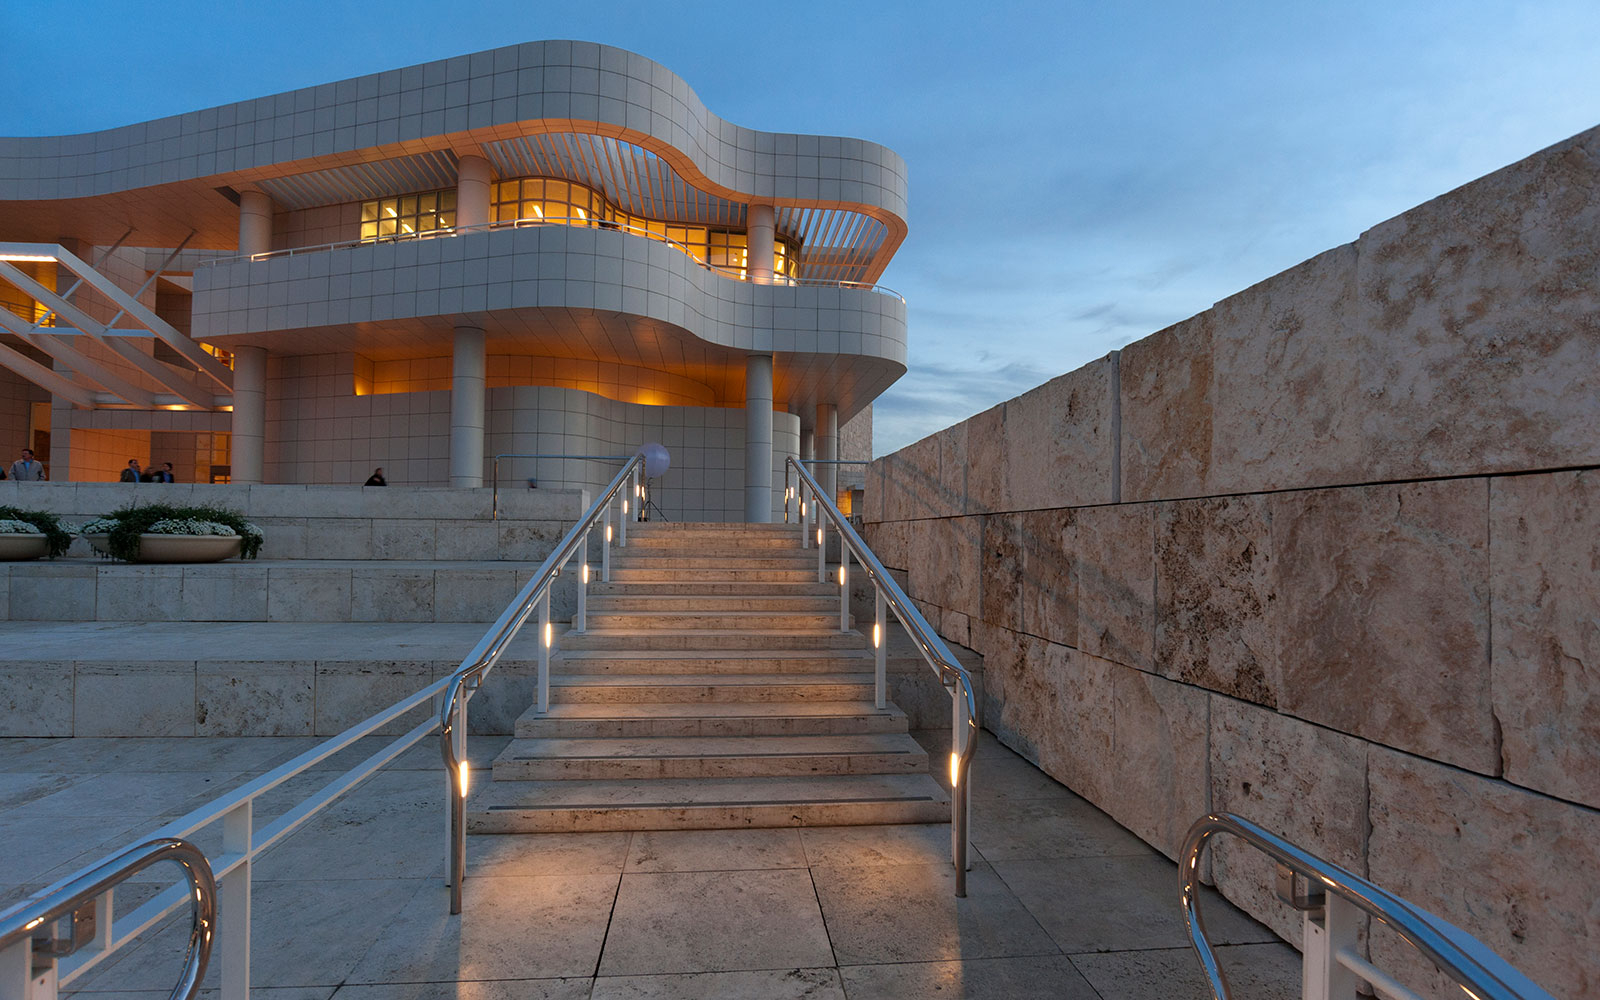 Noon: Admire the Getty Center's Art and Architecture